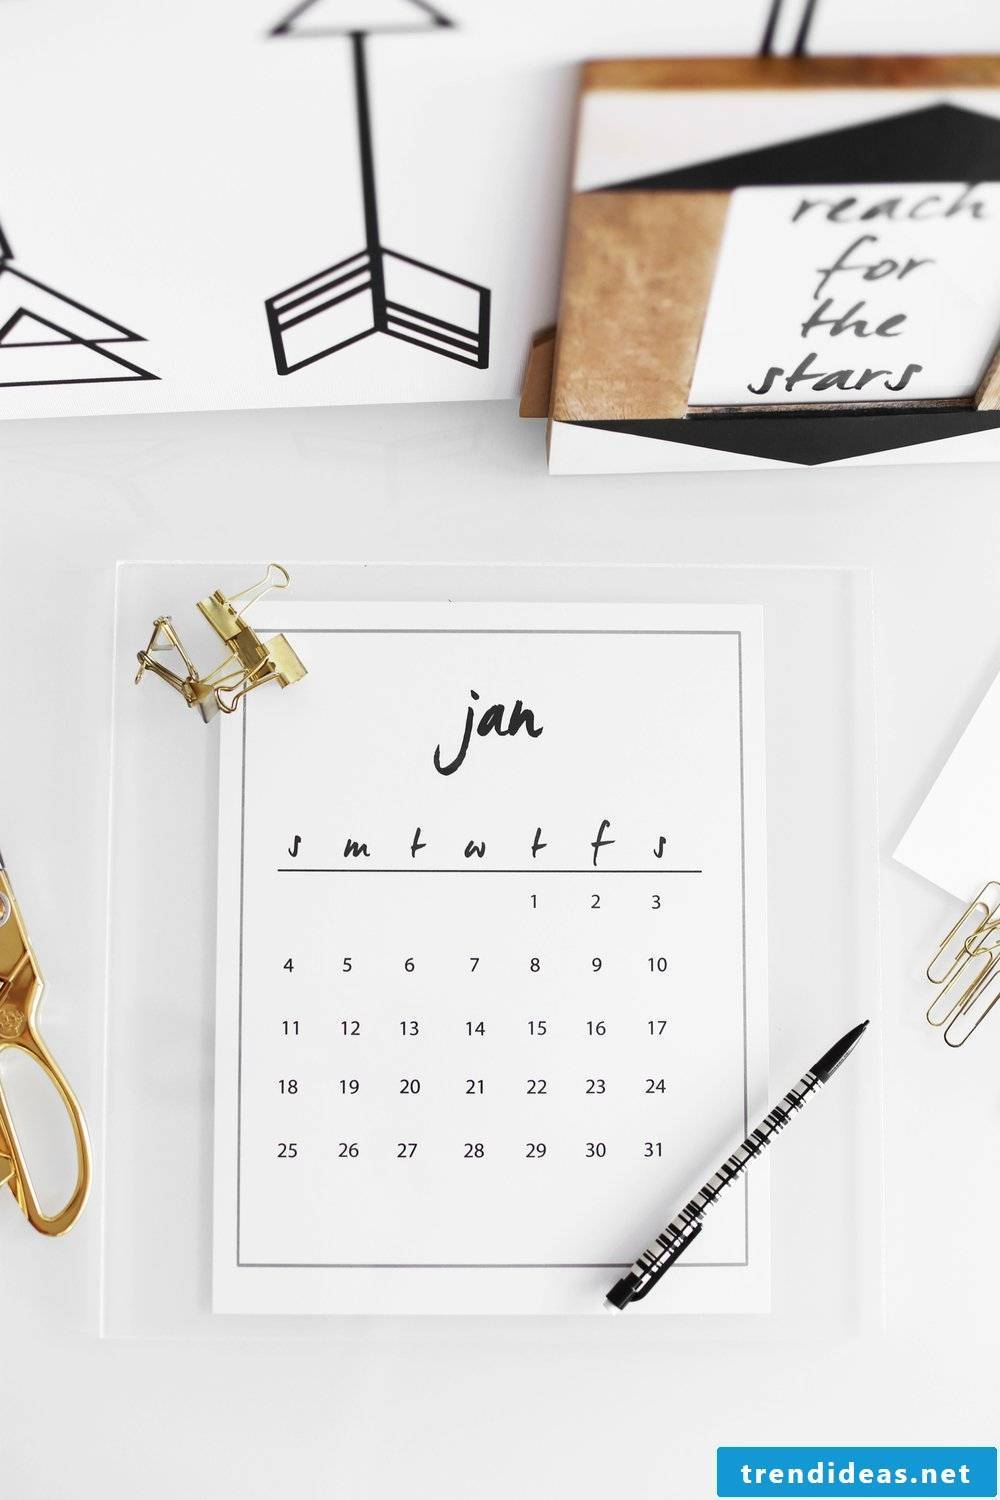 Other great ideas for photo calendars